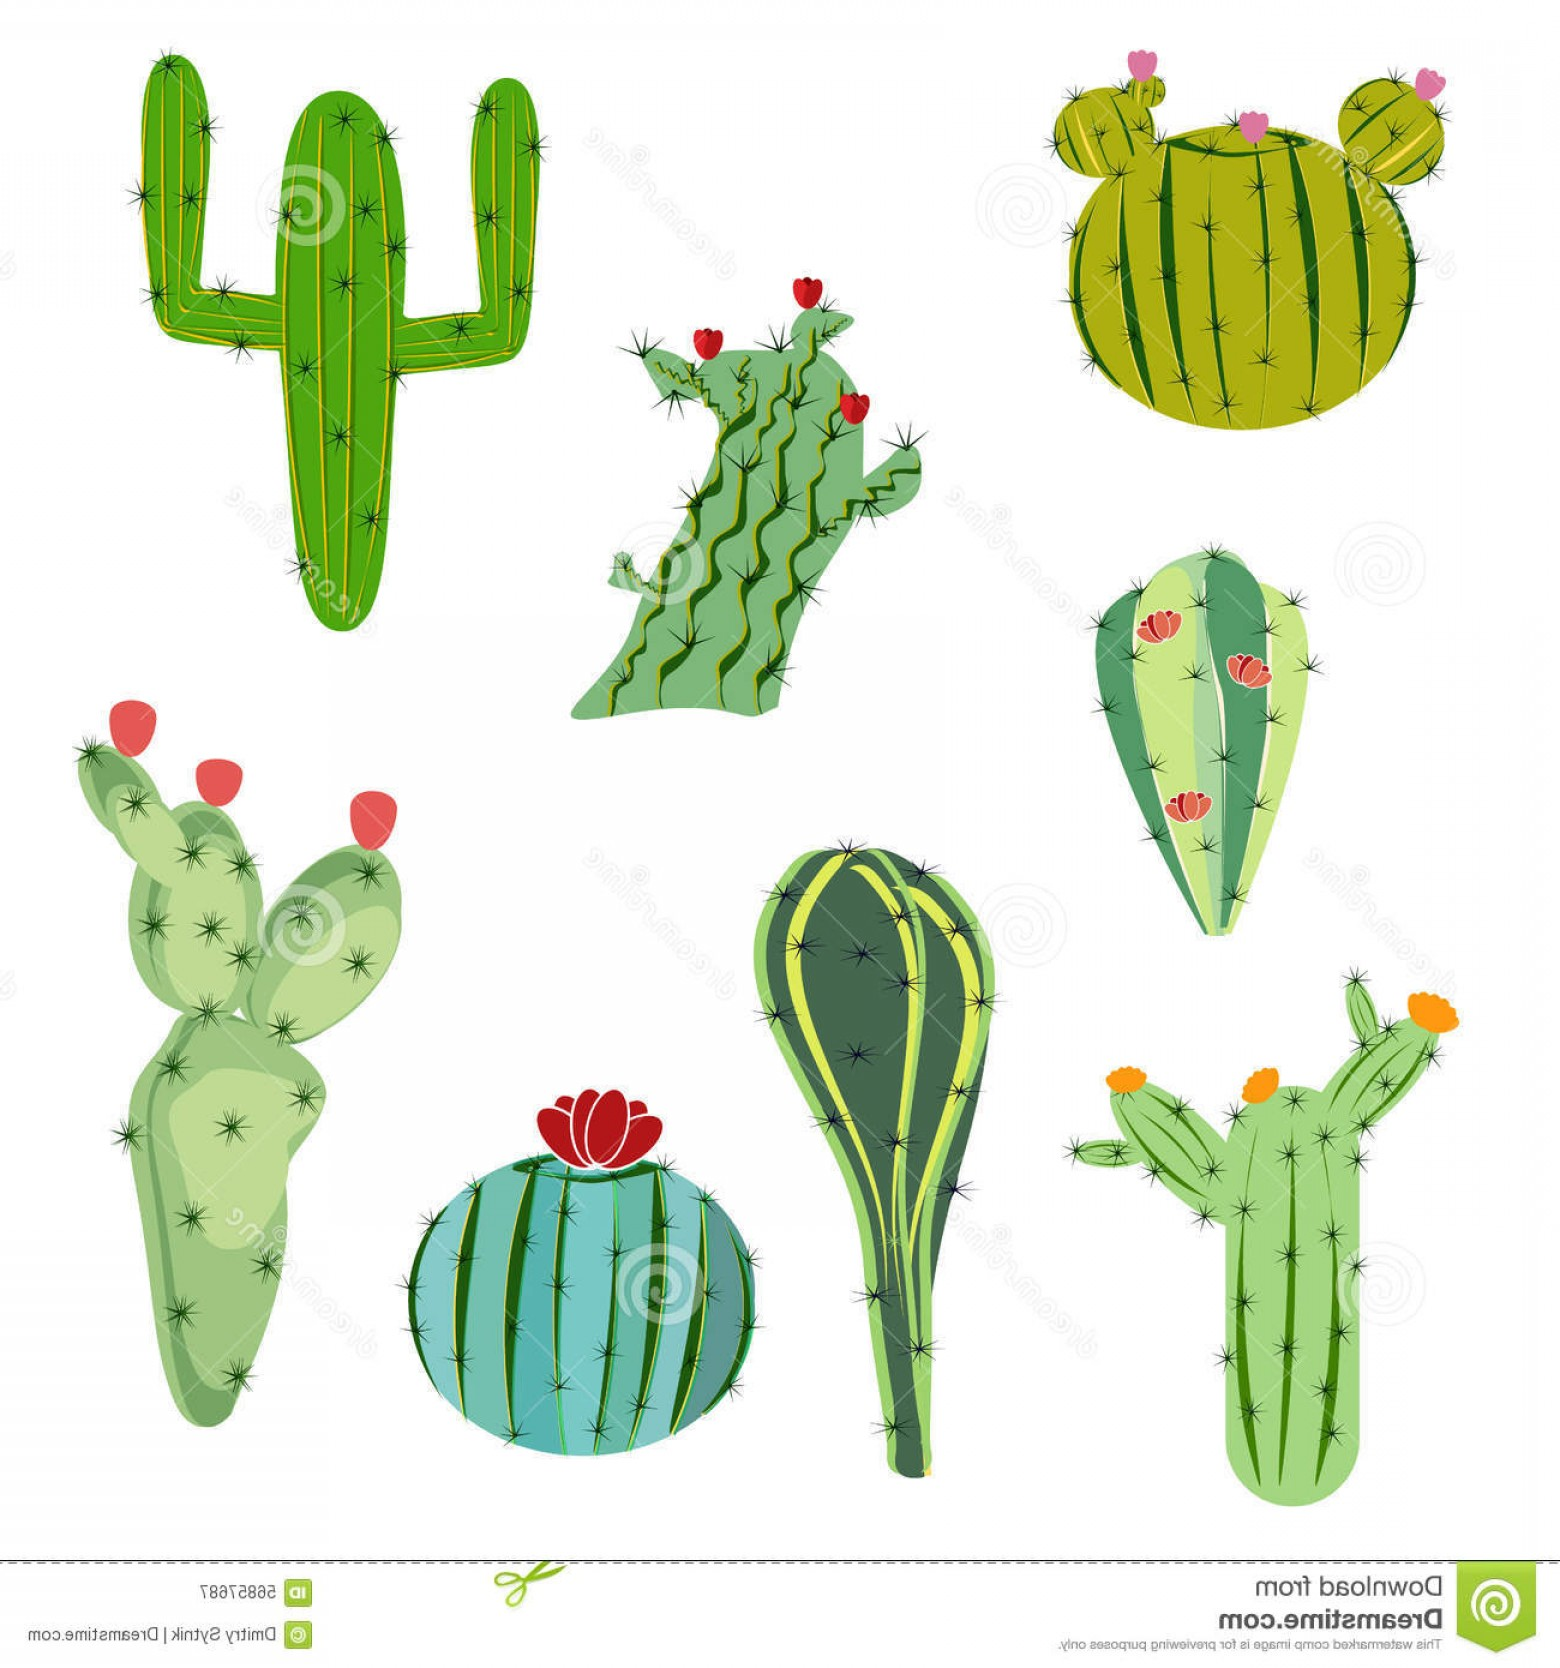 Cactus And Flower Vector: Stock Illustration Vector Illustration Set Cactus Flowers Flat Style Web Print Design Image